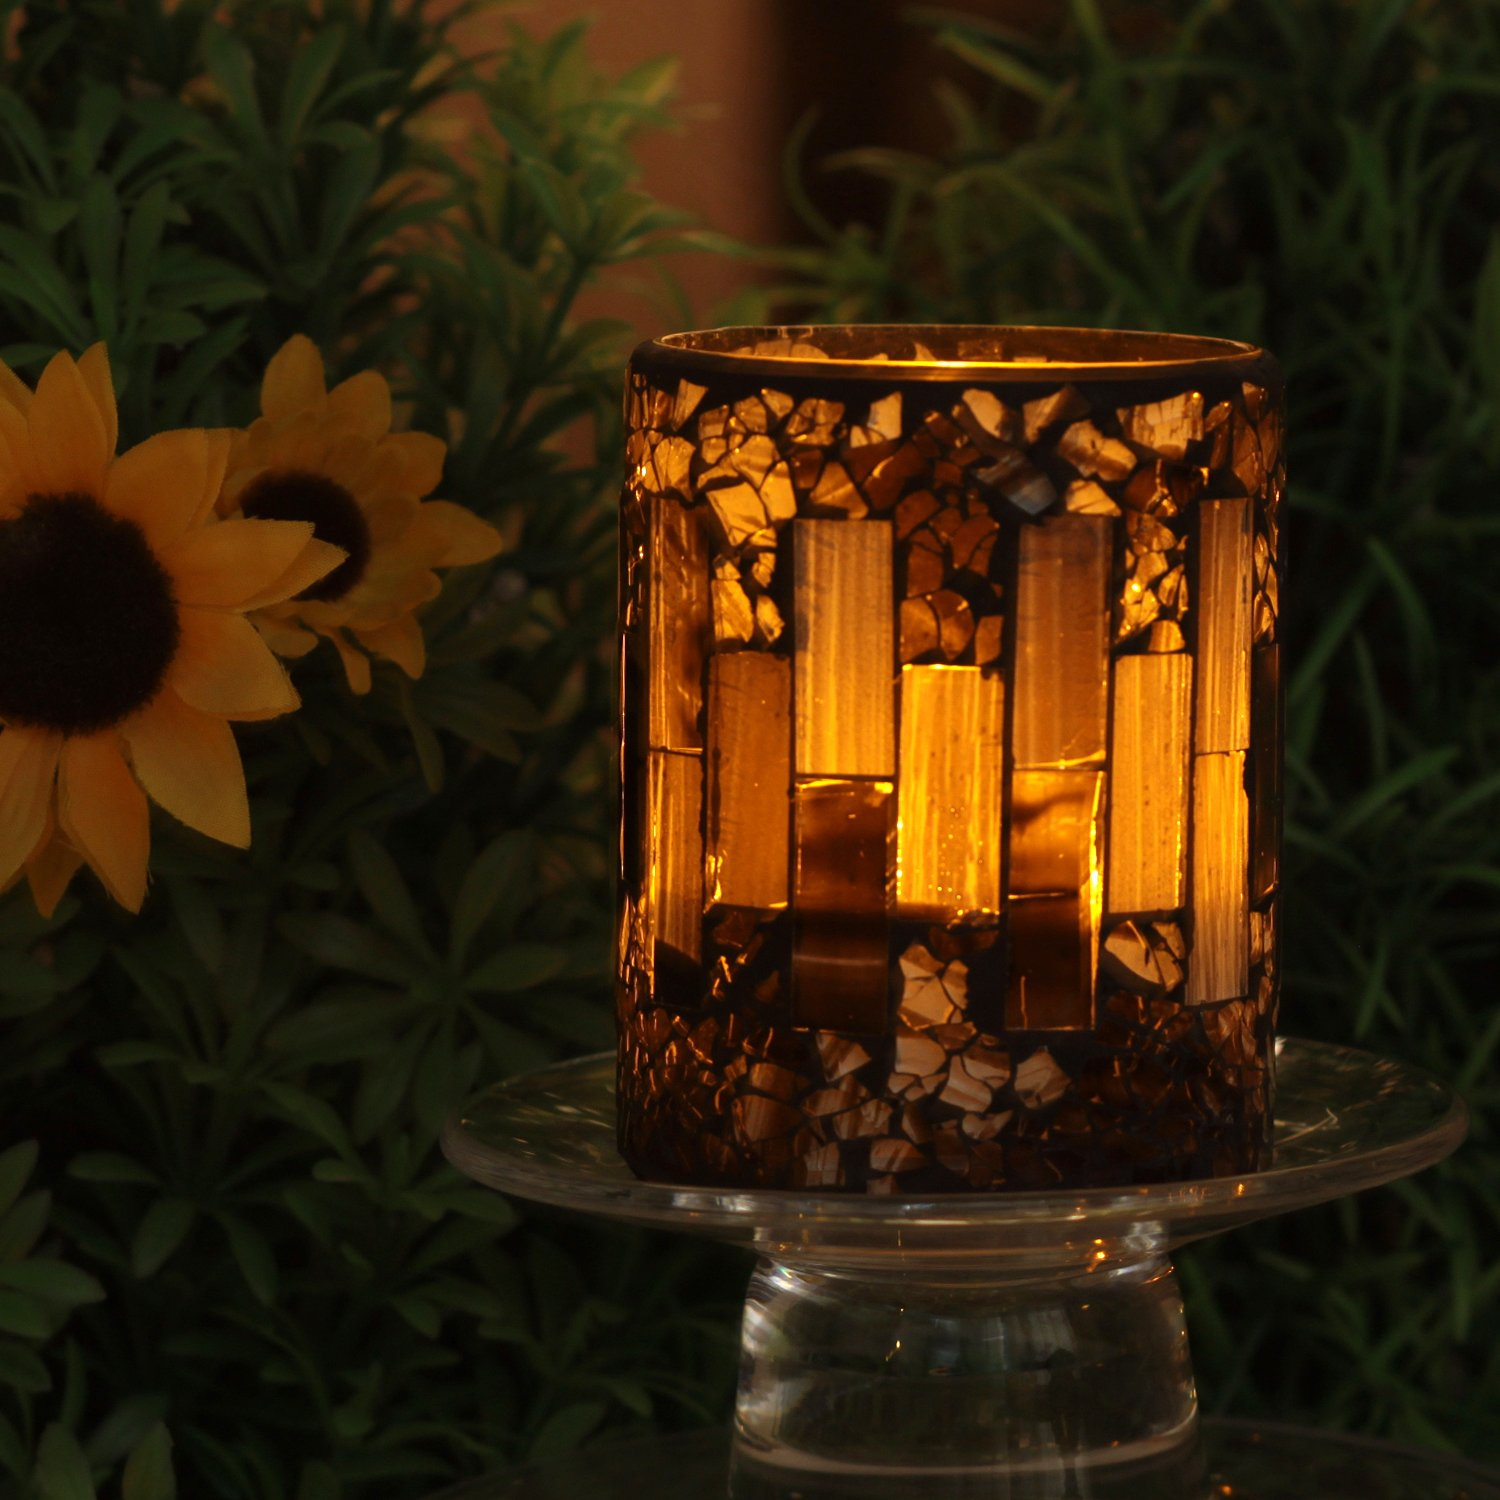 GiveU Brown Mosaic Flameless Candle,Pillar Led Candle with Timer, 3X4, for Home Decor, Weddings, Party and Awesome Gift